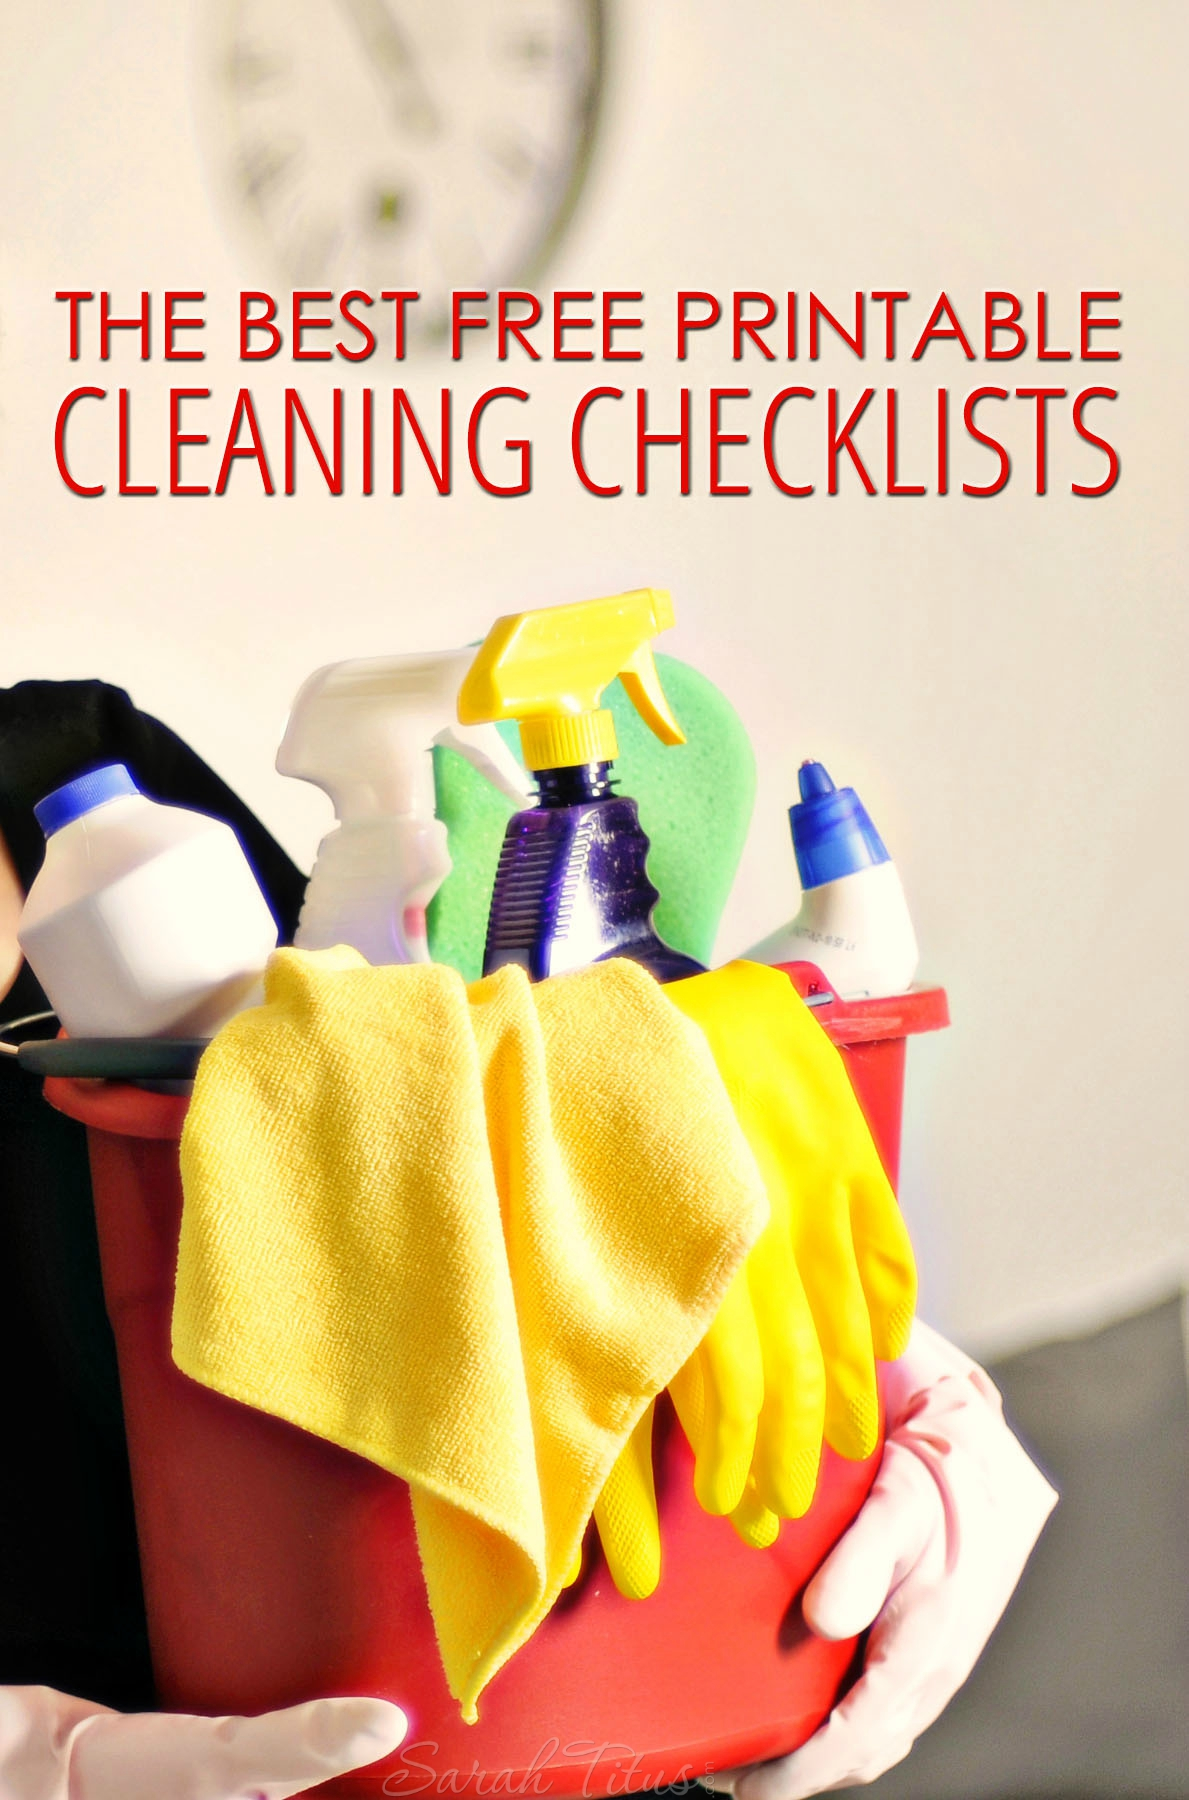 When cleaning, I just want to get in and out, so having a checklist is most helpful. Depending on how YOUR brain works, here are the best 10 free printable cleaning checklists I found online!